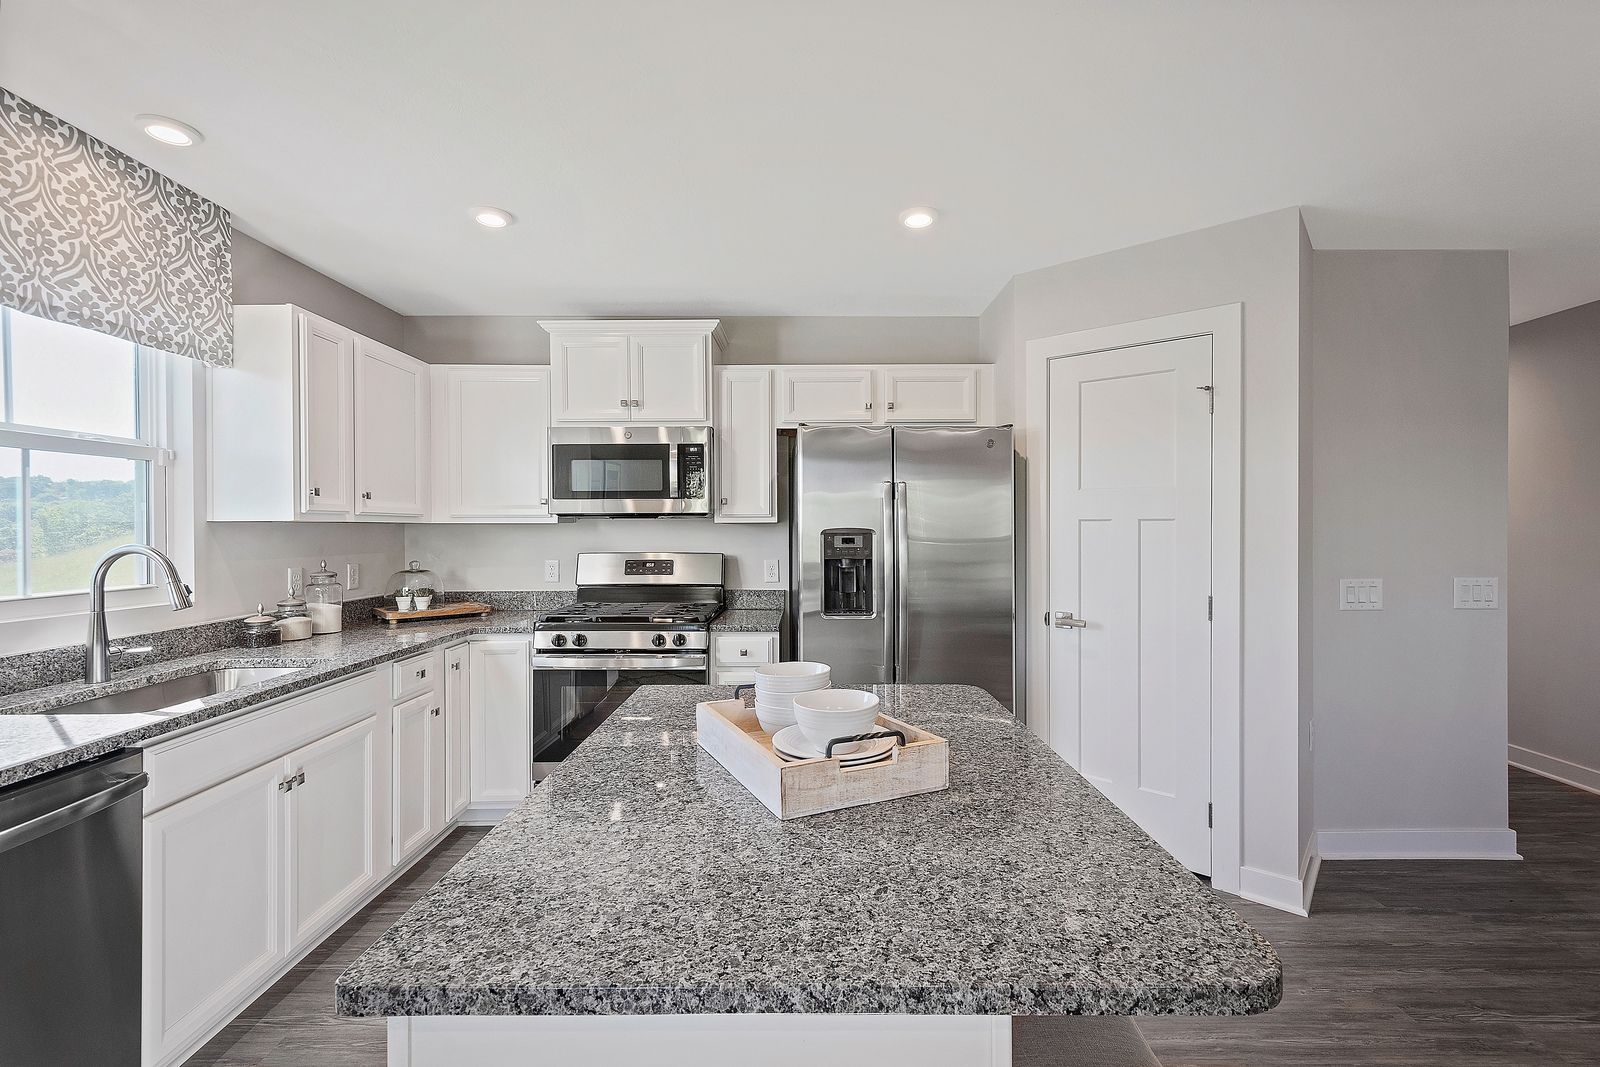 Kitchen featured in the Barbados Isle By Ryan Homes in Harrisonburg, VA